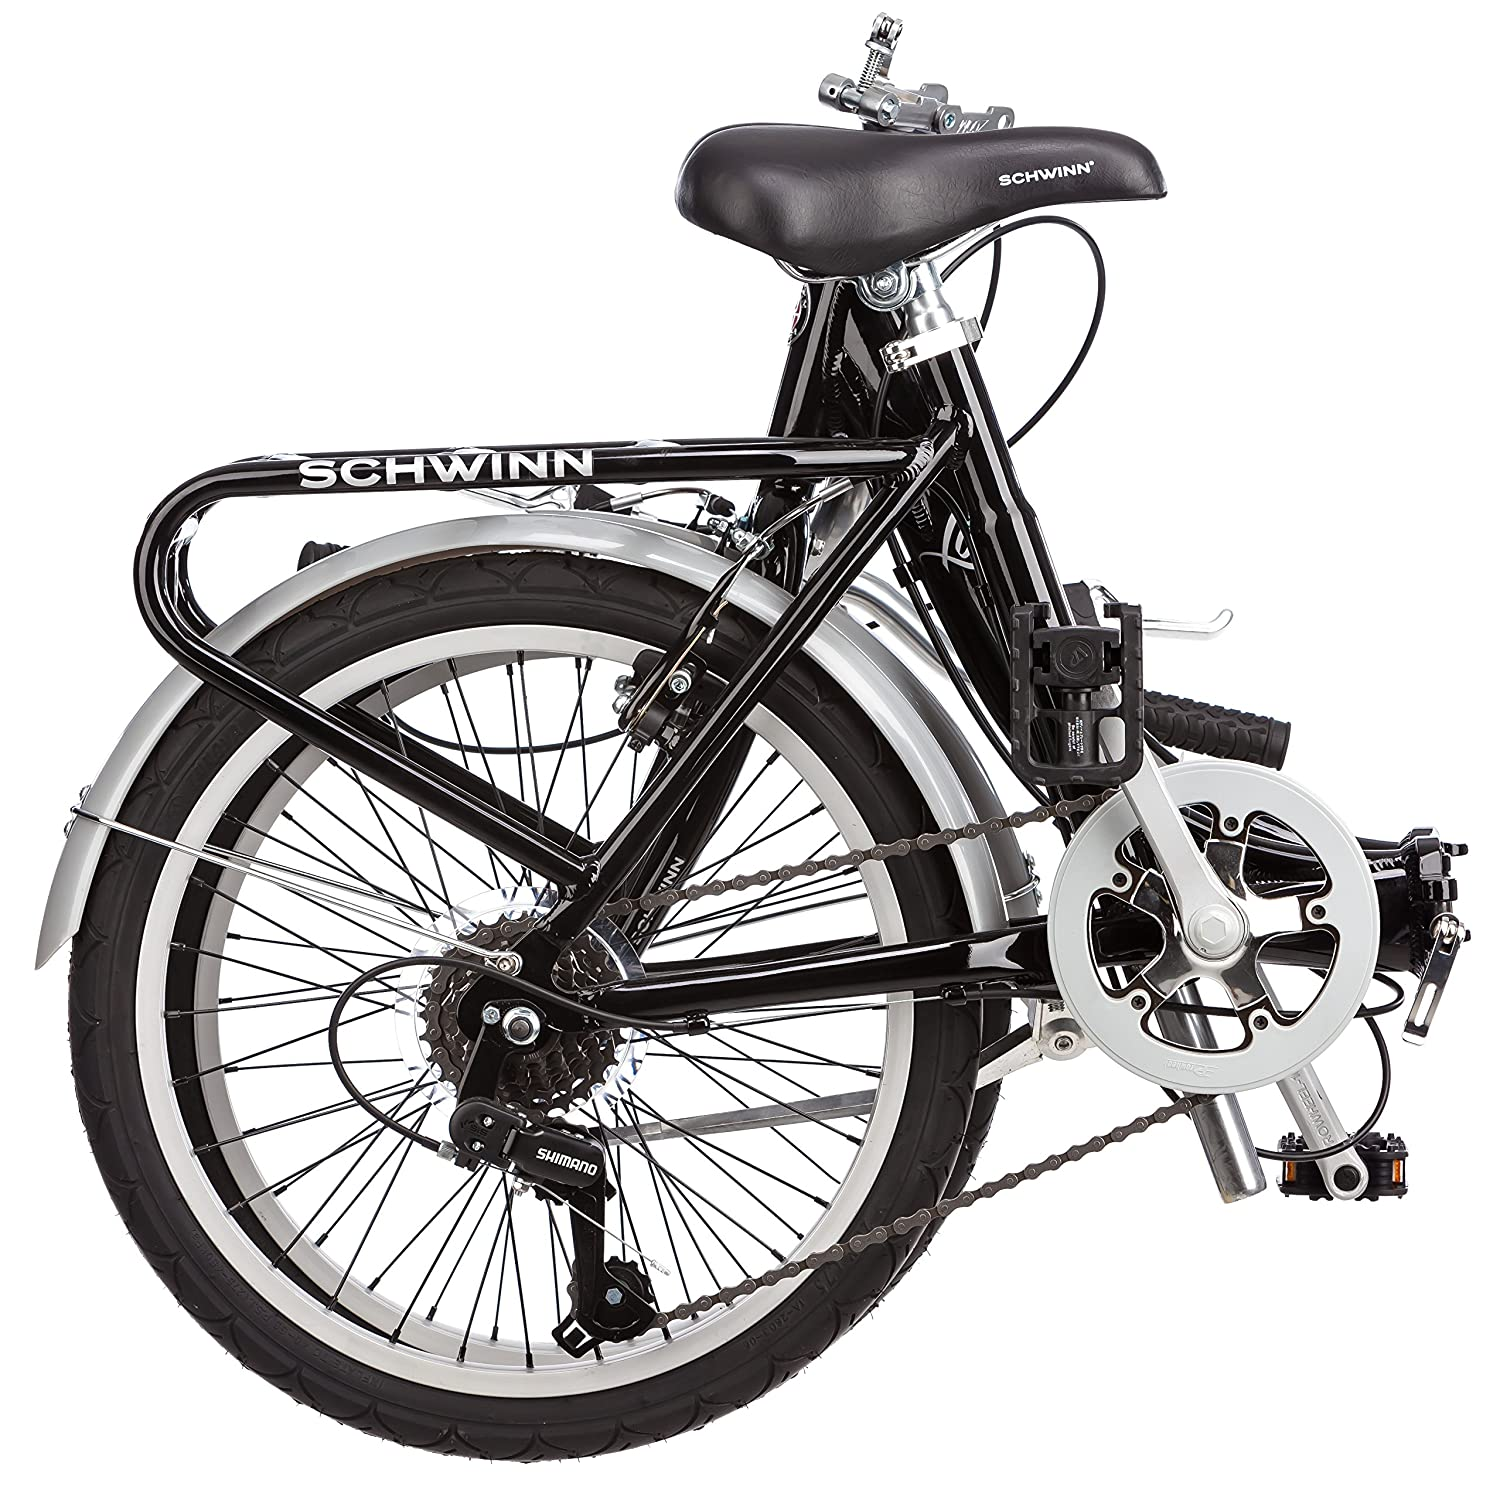 The Schwinn 20-inch Loop completely folded.